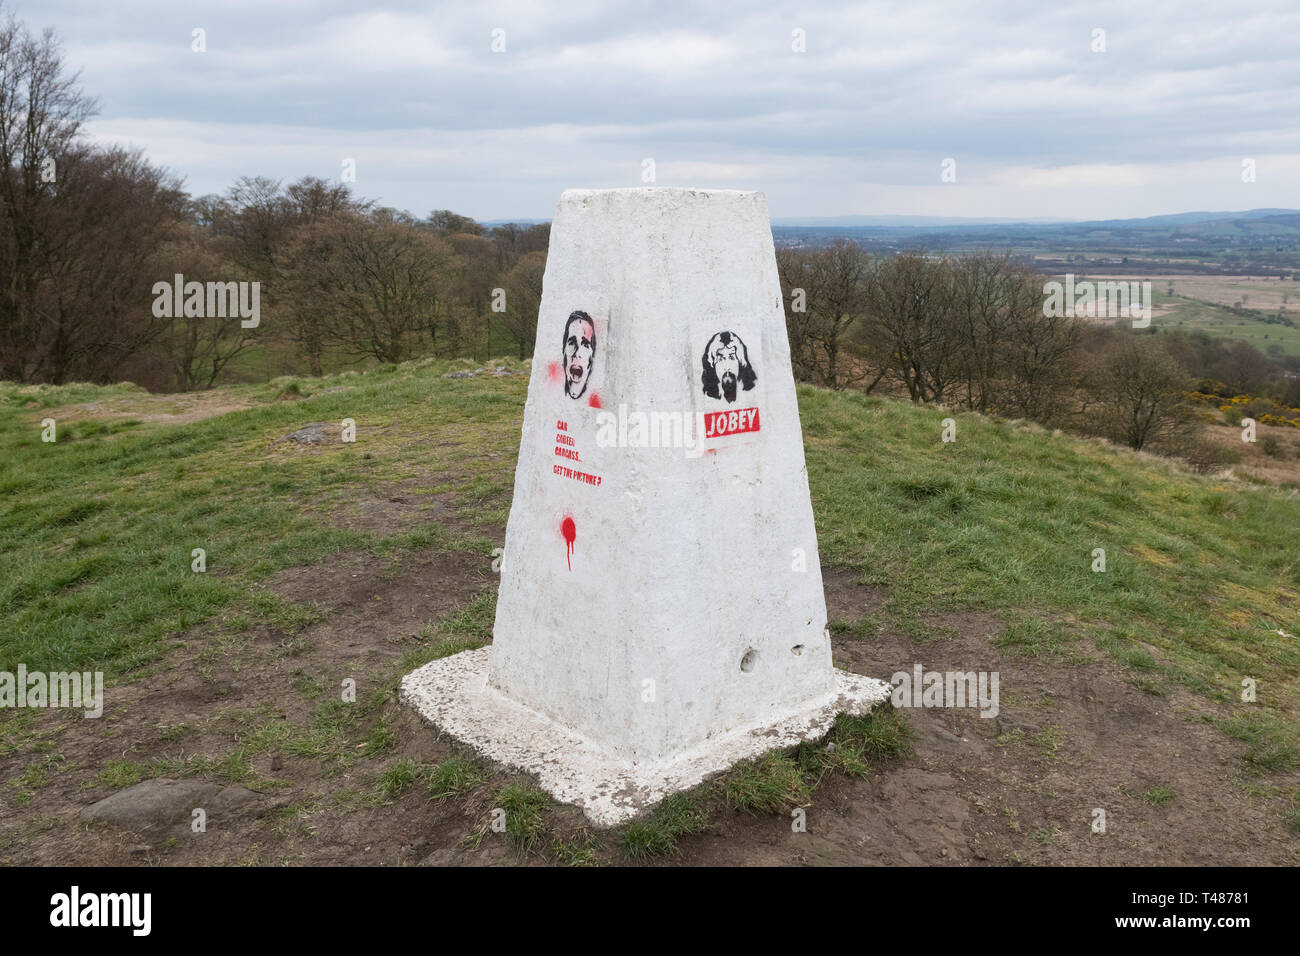 white trigpoint with stencil graffiti - Castle Hill Hillfort, nr Bar Hill Fort, Antonine Wall,  Twechar, East Dunbartonshire, Scotland, UK Stock Photo